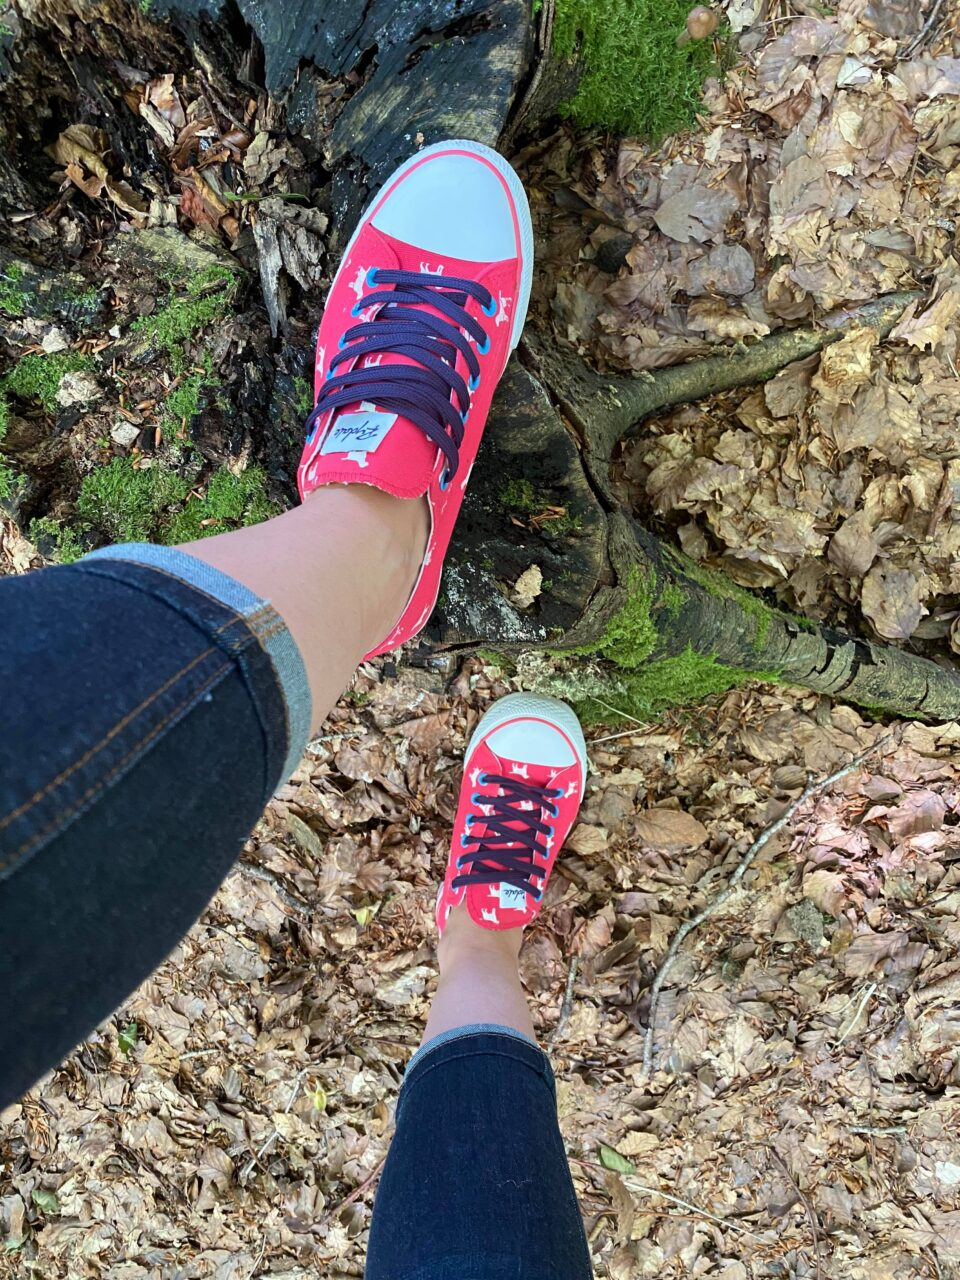 looking down on on the shoes on a tree trunk